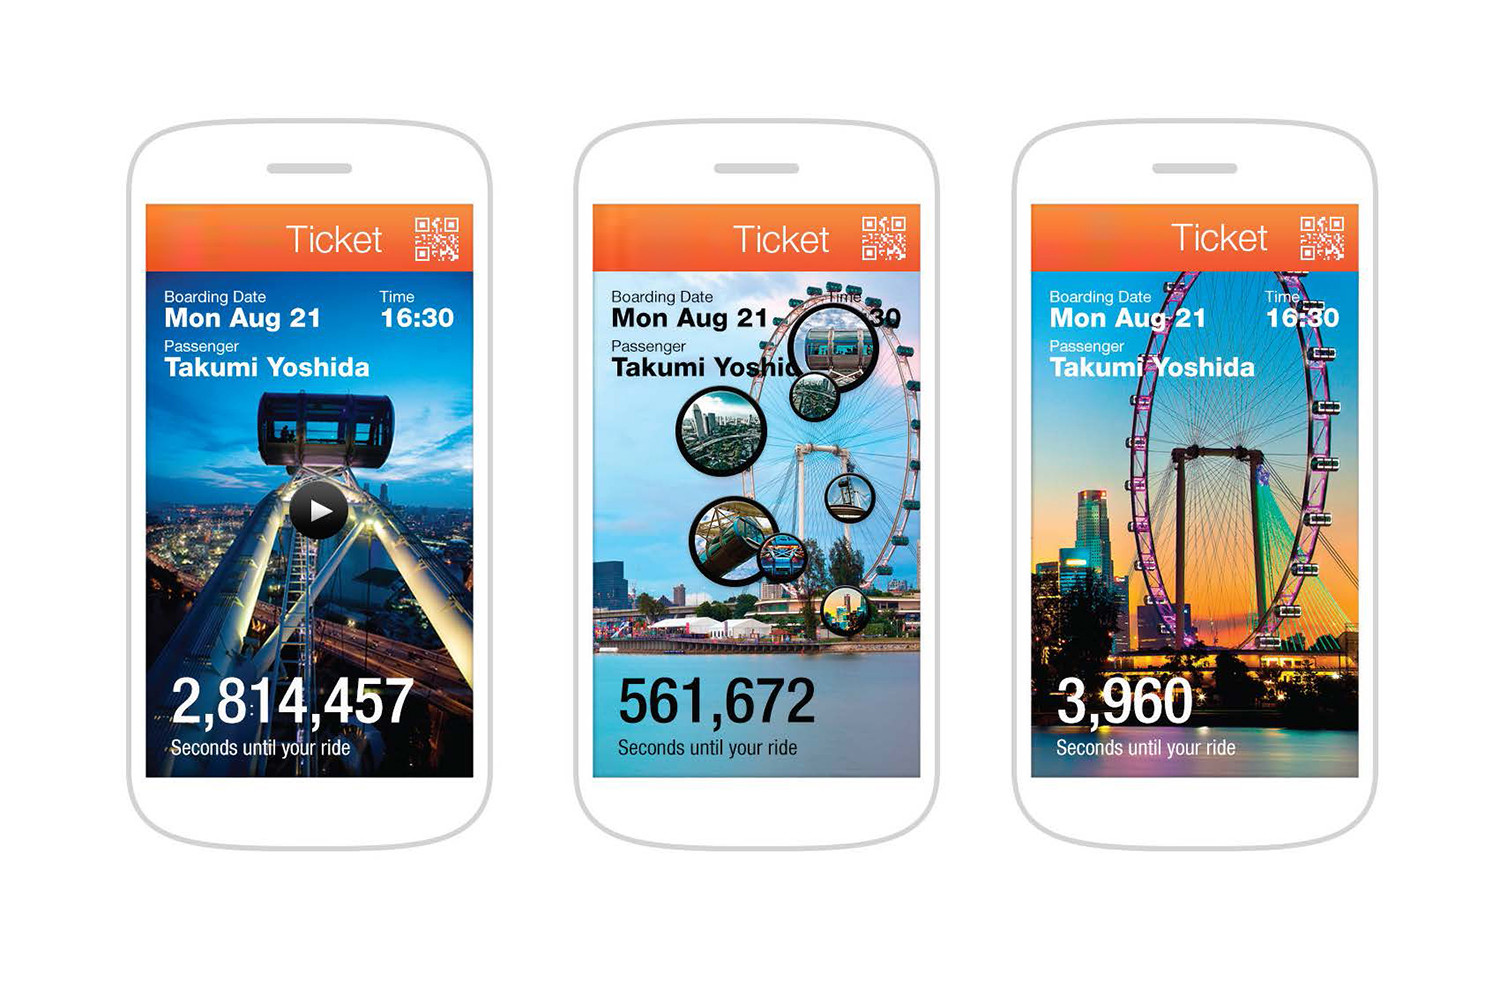 The Nippon Moon app will utilize 'active queuing,' allowing users to shop and eat while they wait for their scheduled ride time. Image Courtesy of UNStudio